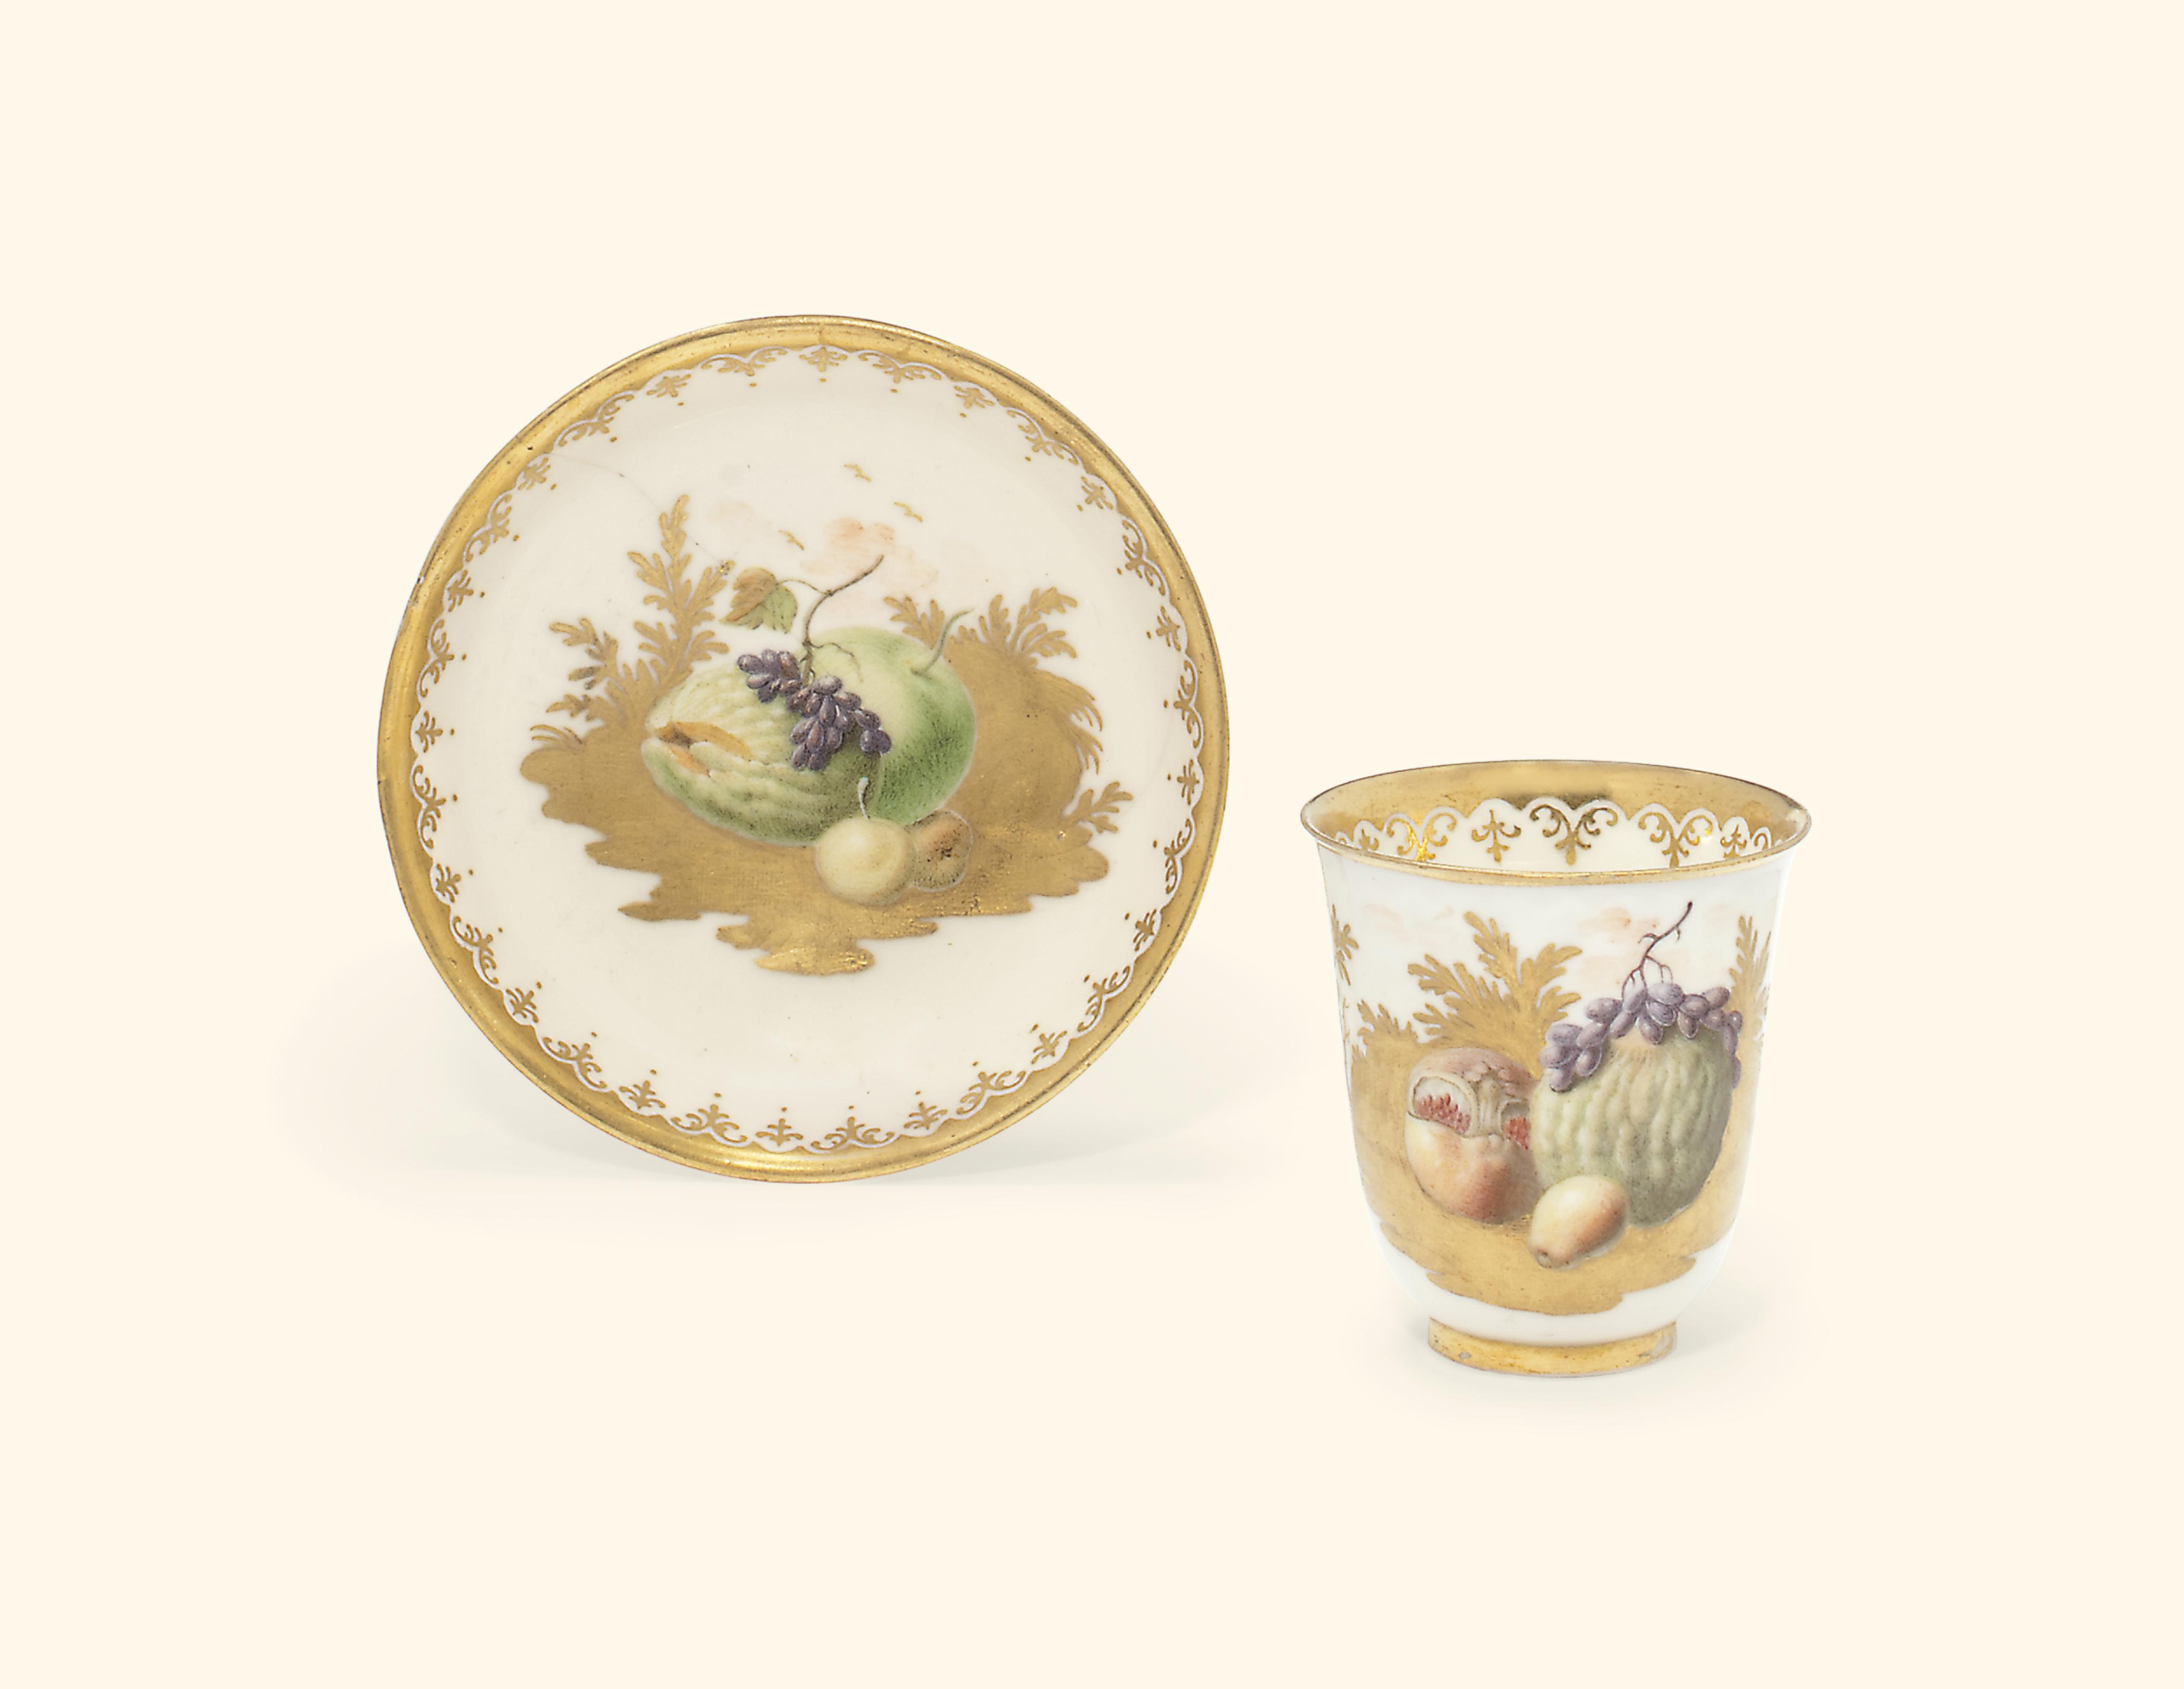 A CAPODIMONTE COFFEE OR CHOCOLATE-CUP AND SAUCER